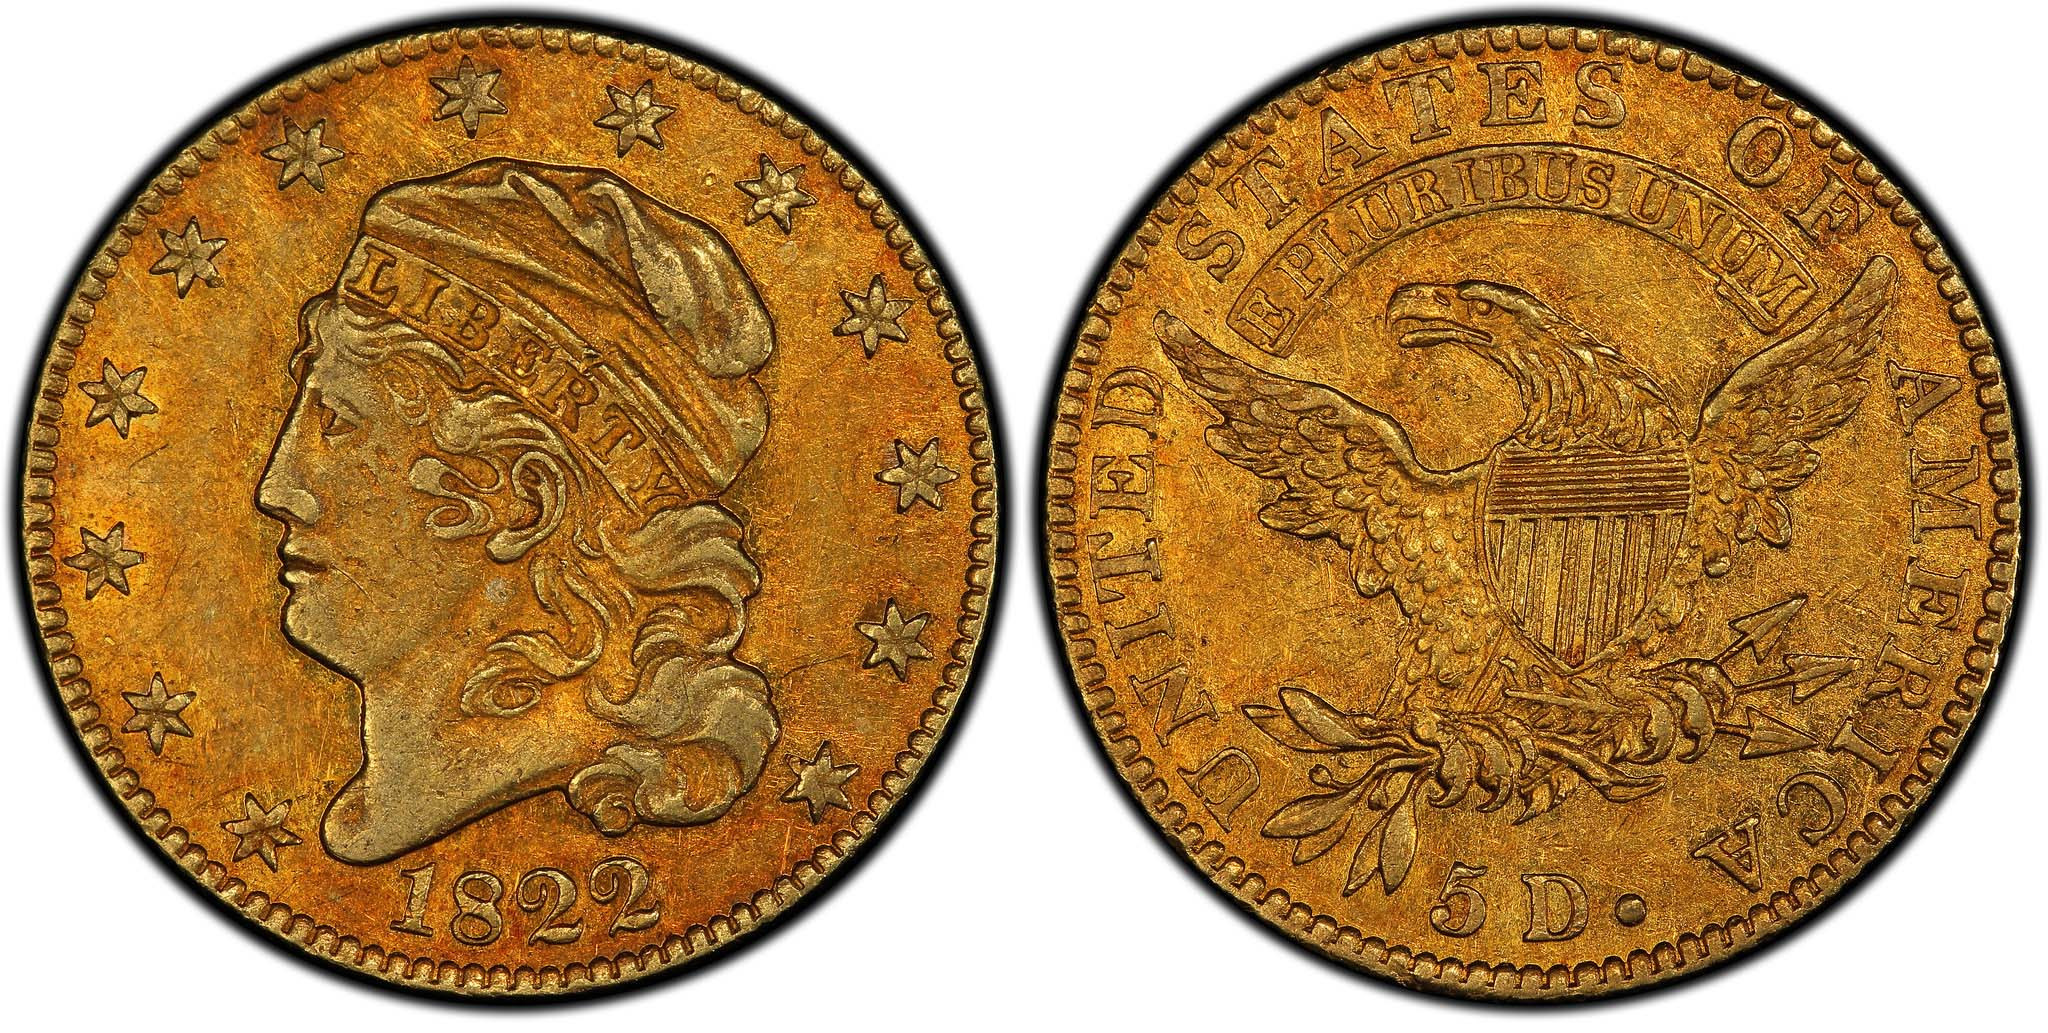 Most Valuable Quarters Luxury the Rarest Coin In the World Of Marvelous 40 Pictures Most Valuable Quarters